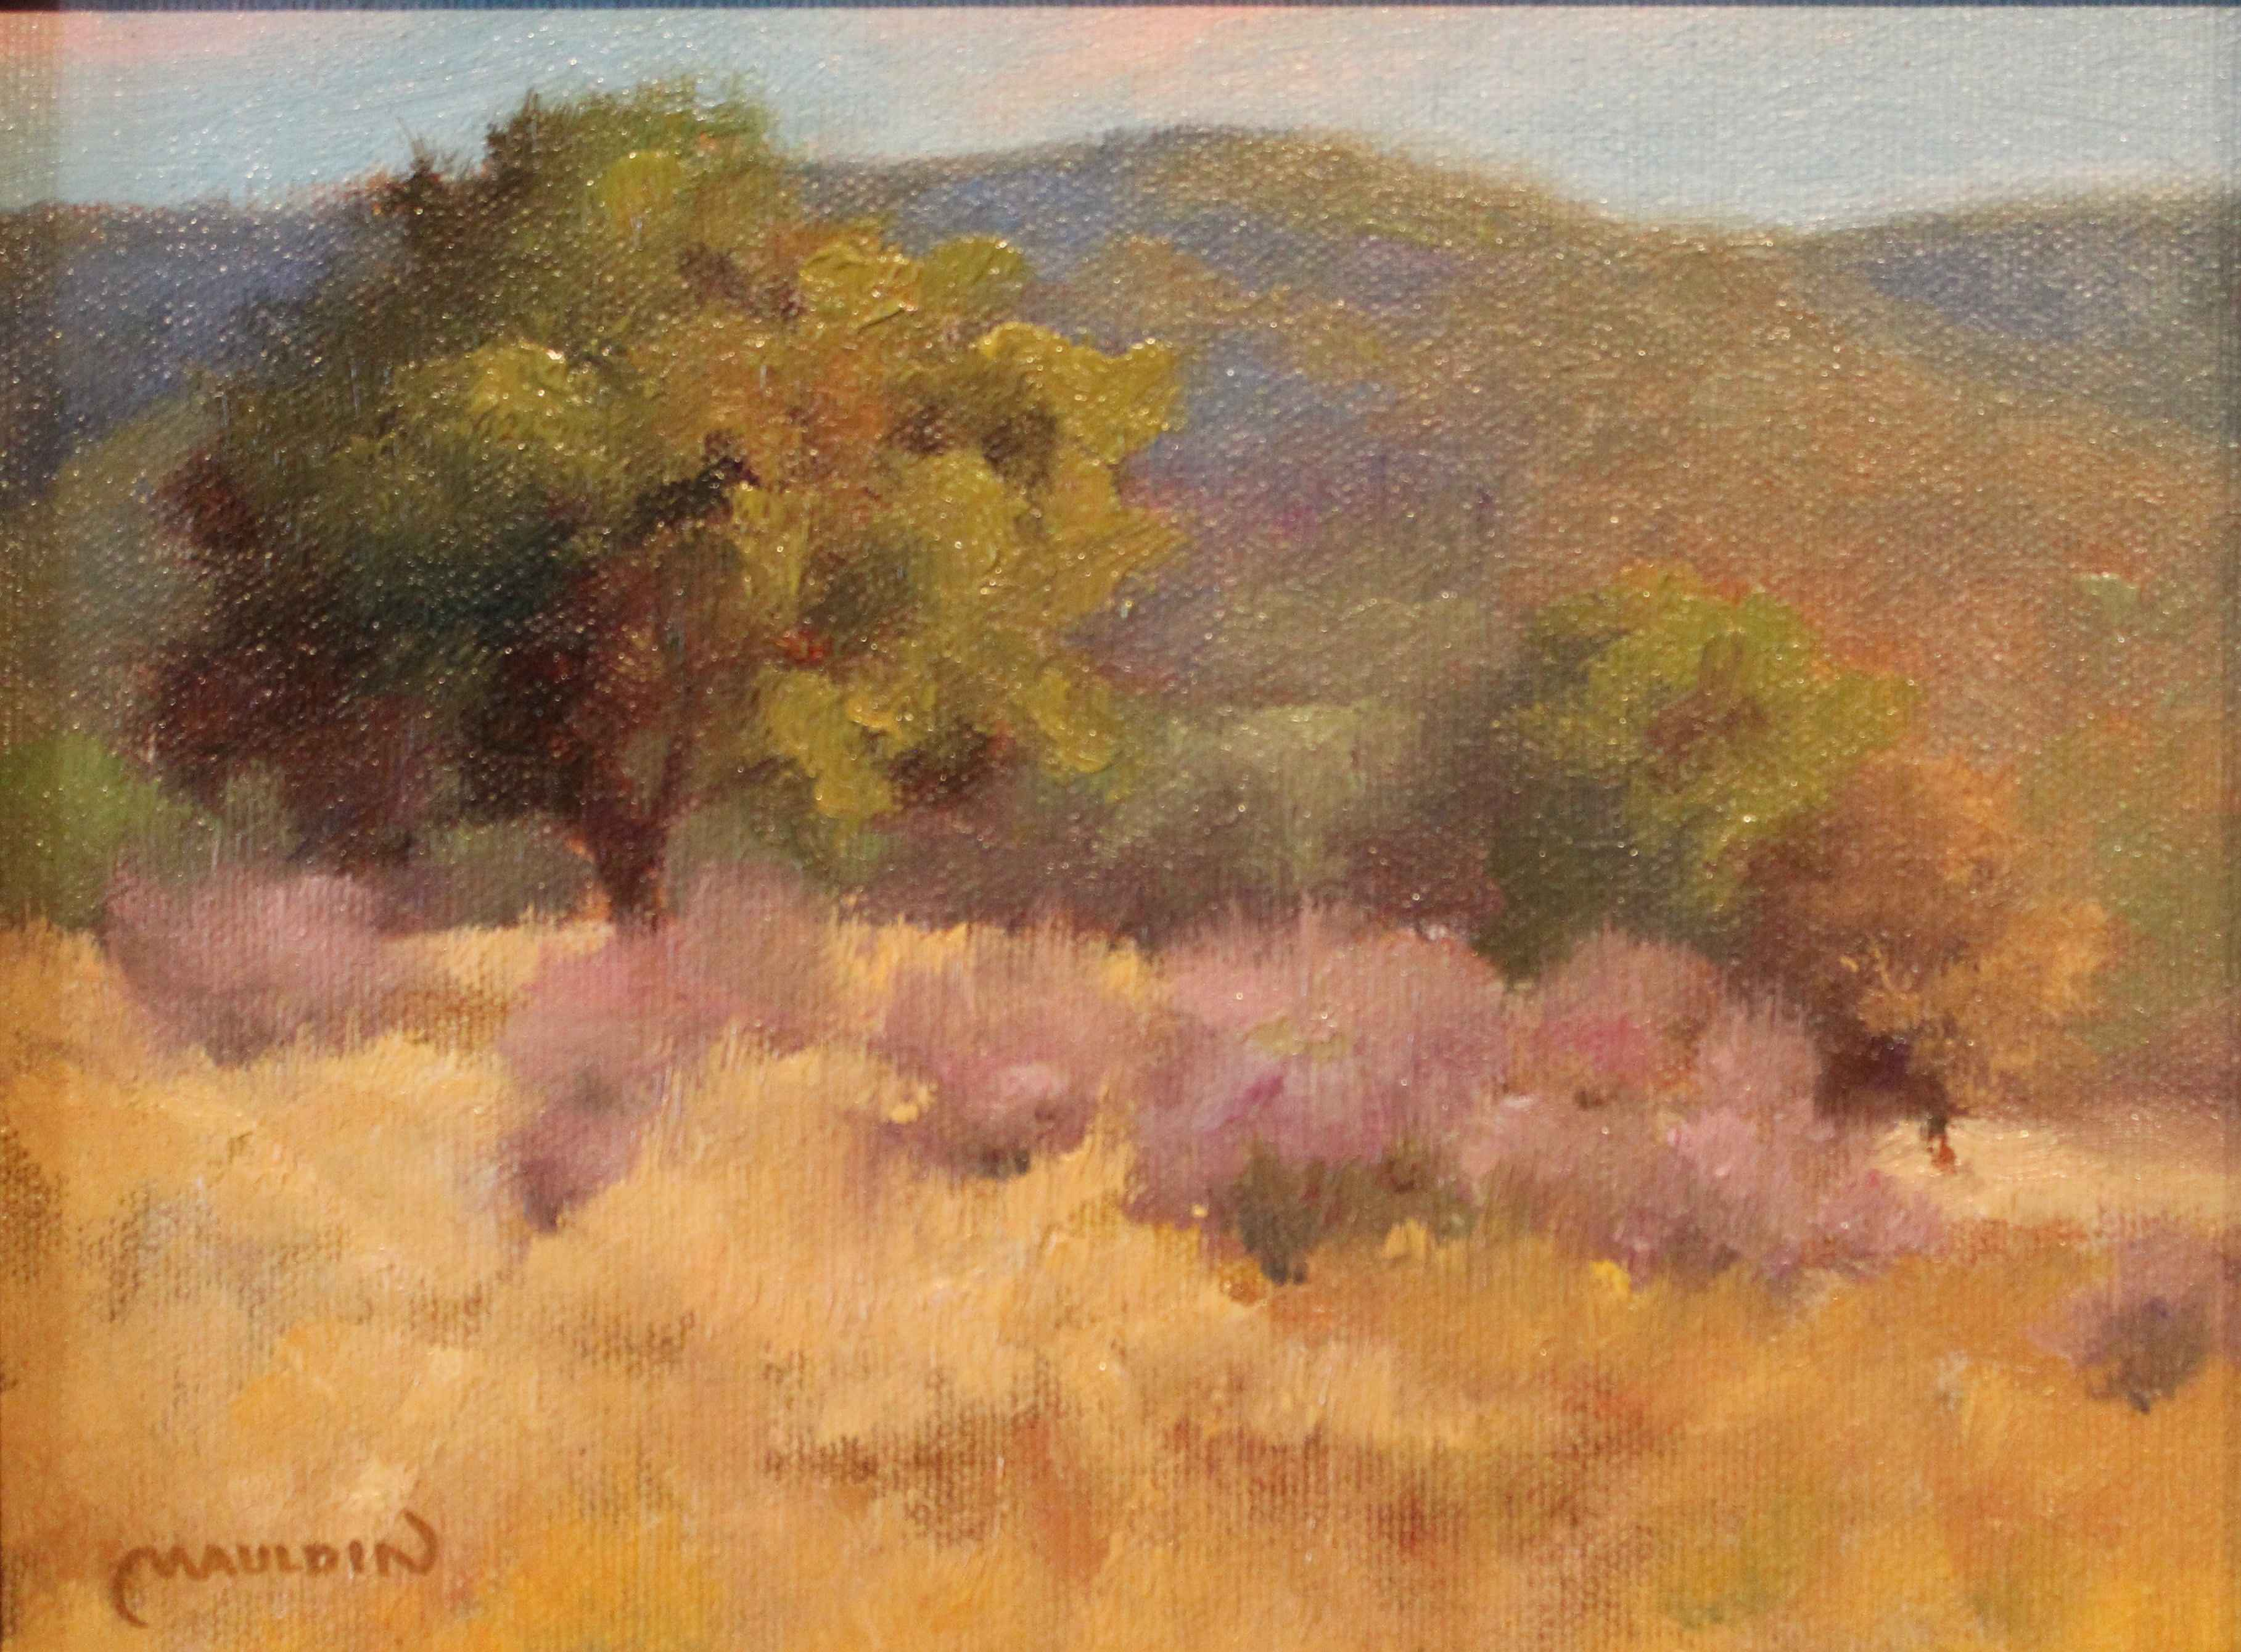 Afternoon Air by  Chuck Mauldin - Masterpiece Online